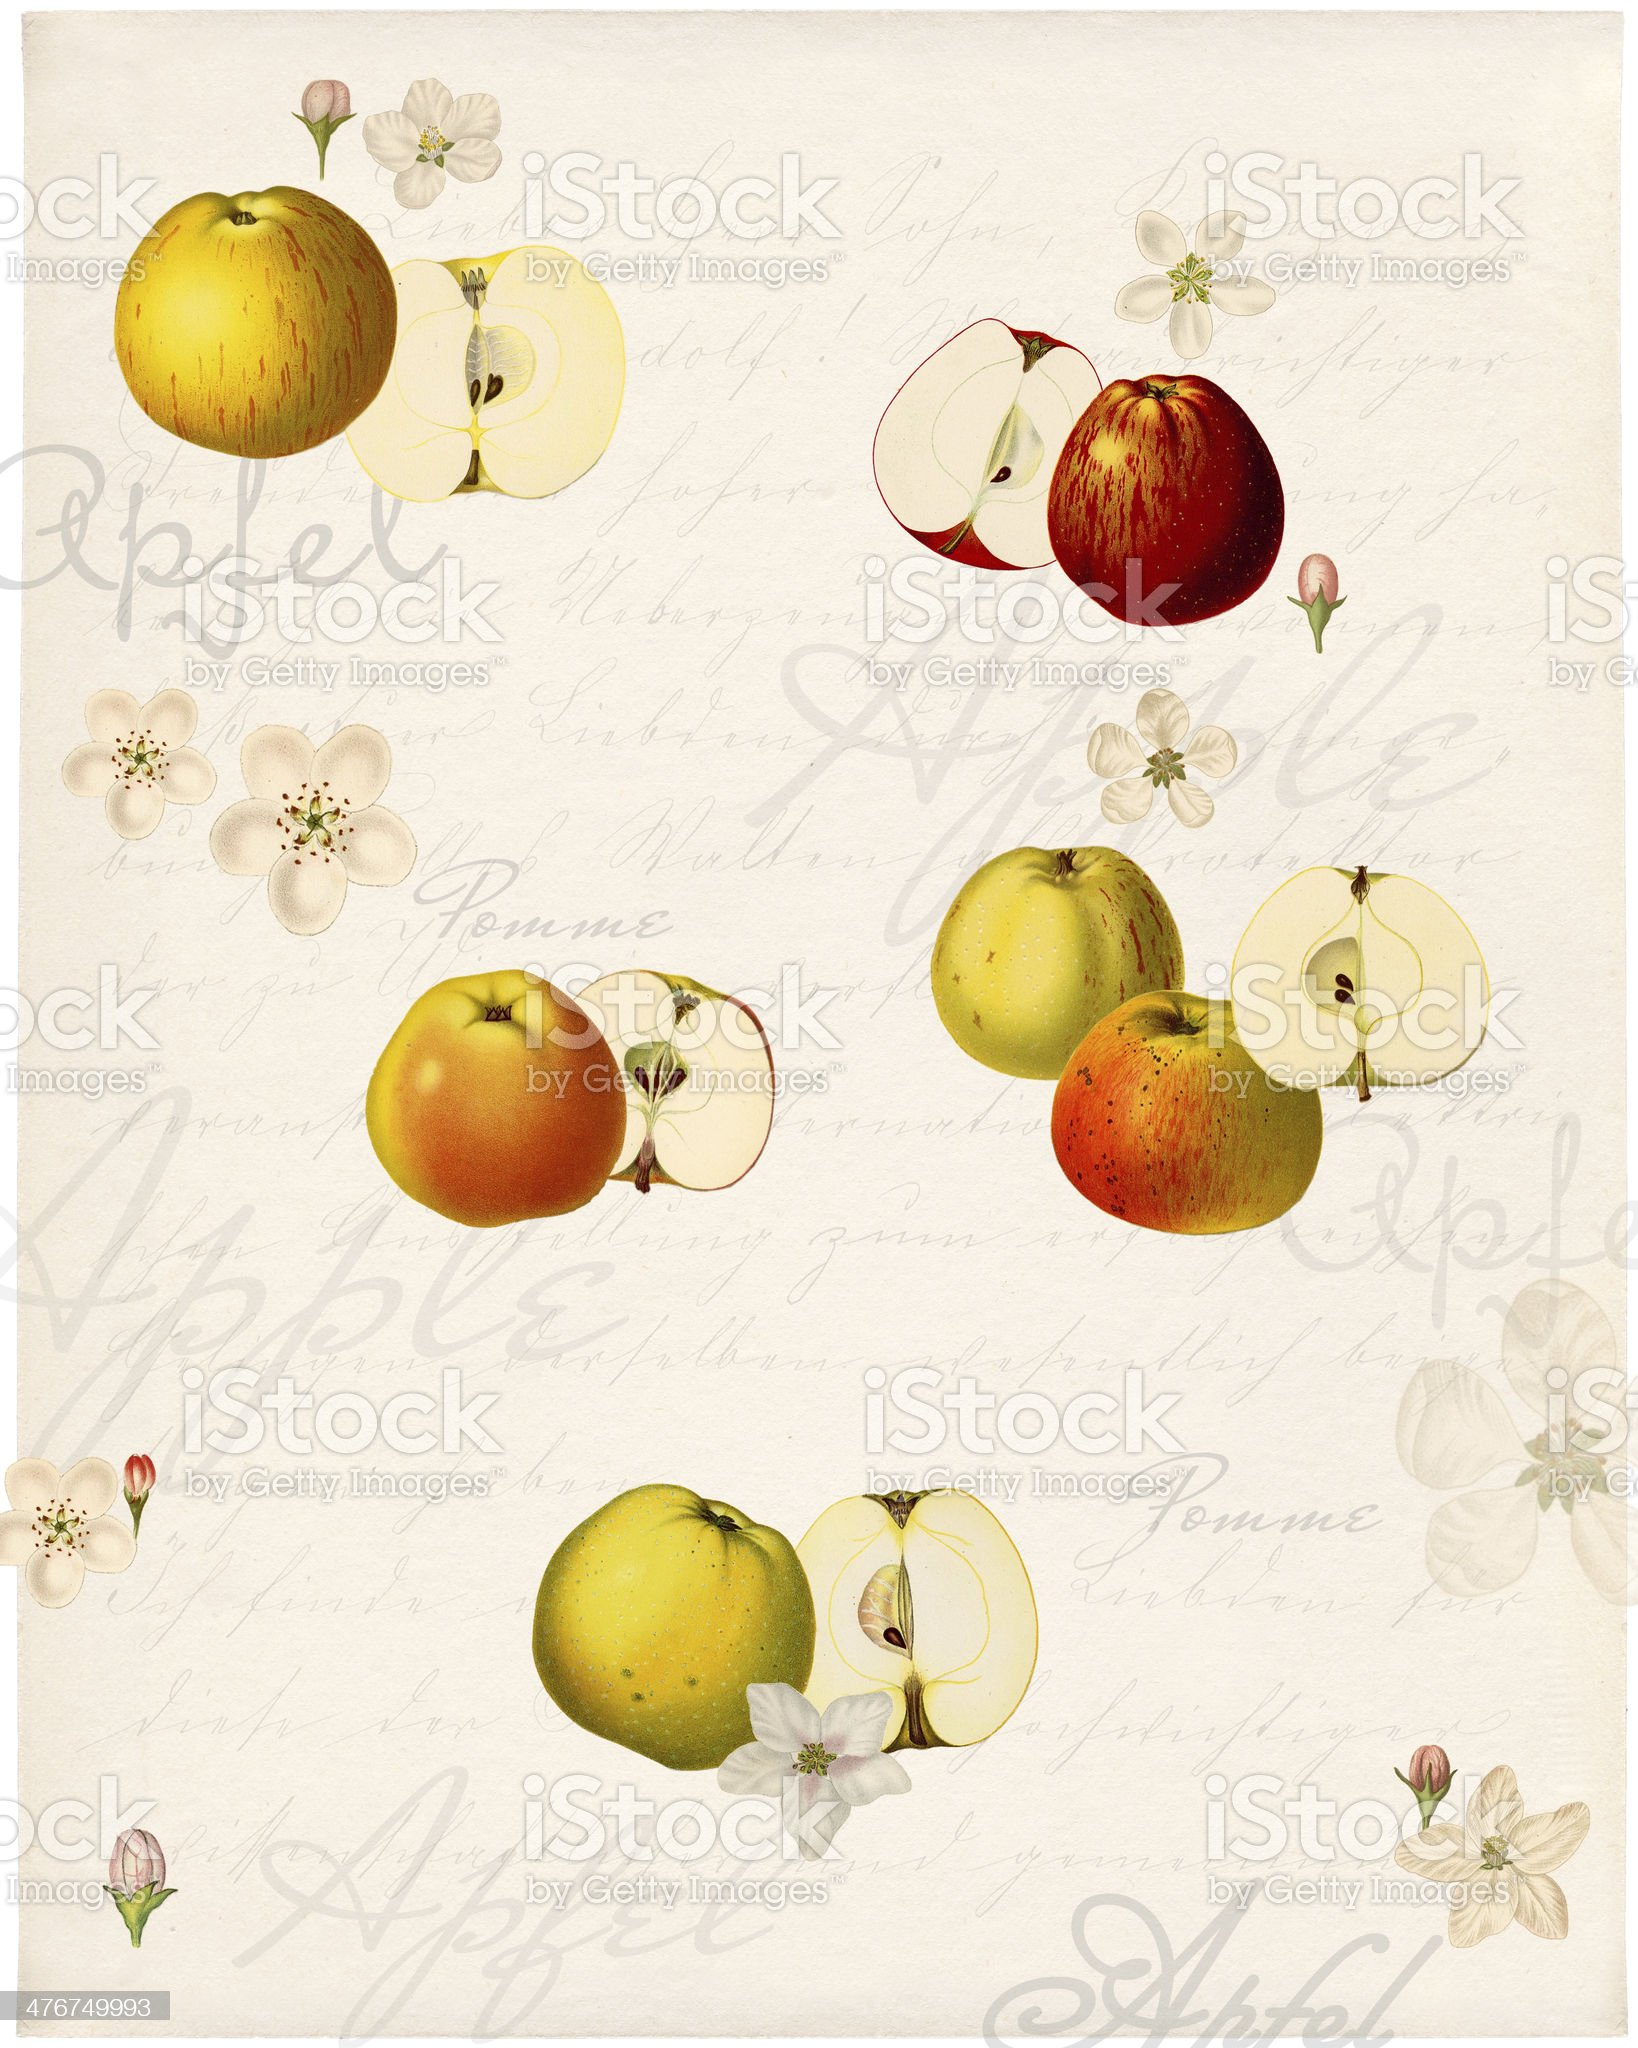 Graphics with old apple varieties royalty-free stock photo